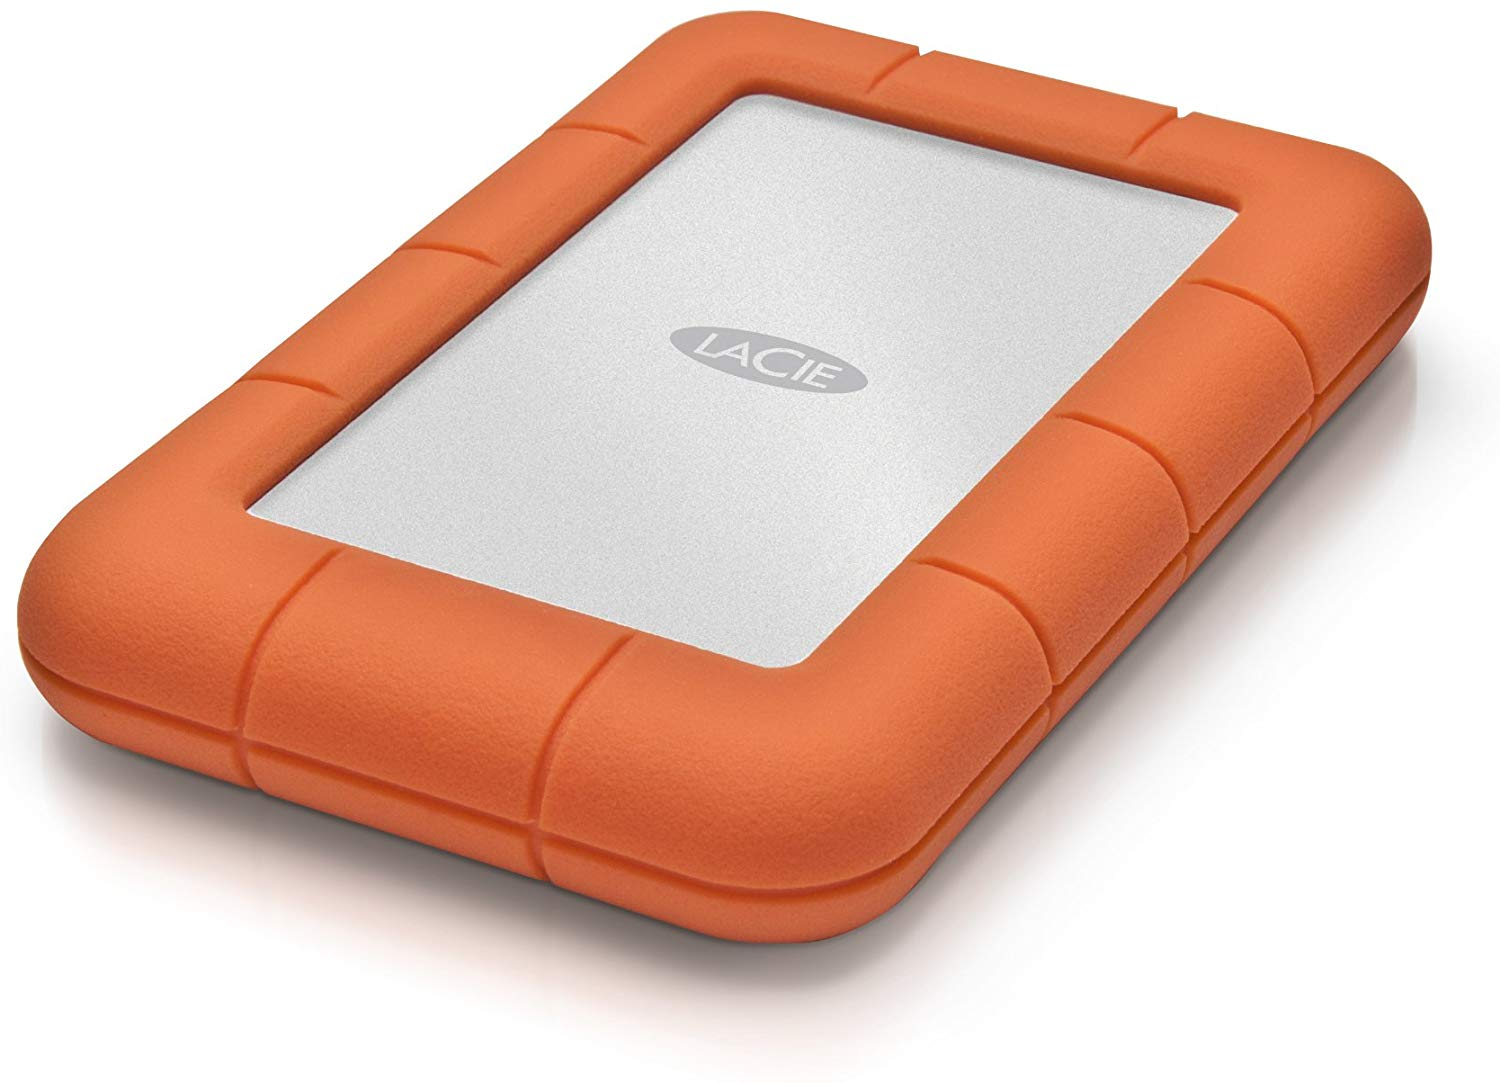 Lacie External Hard Drive - Best Gifts for Photographers